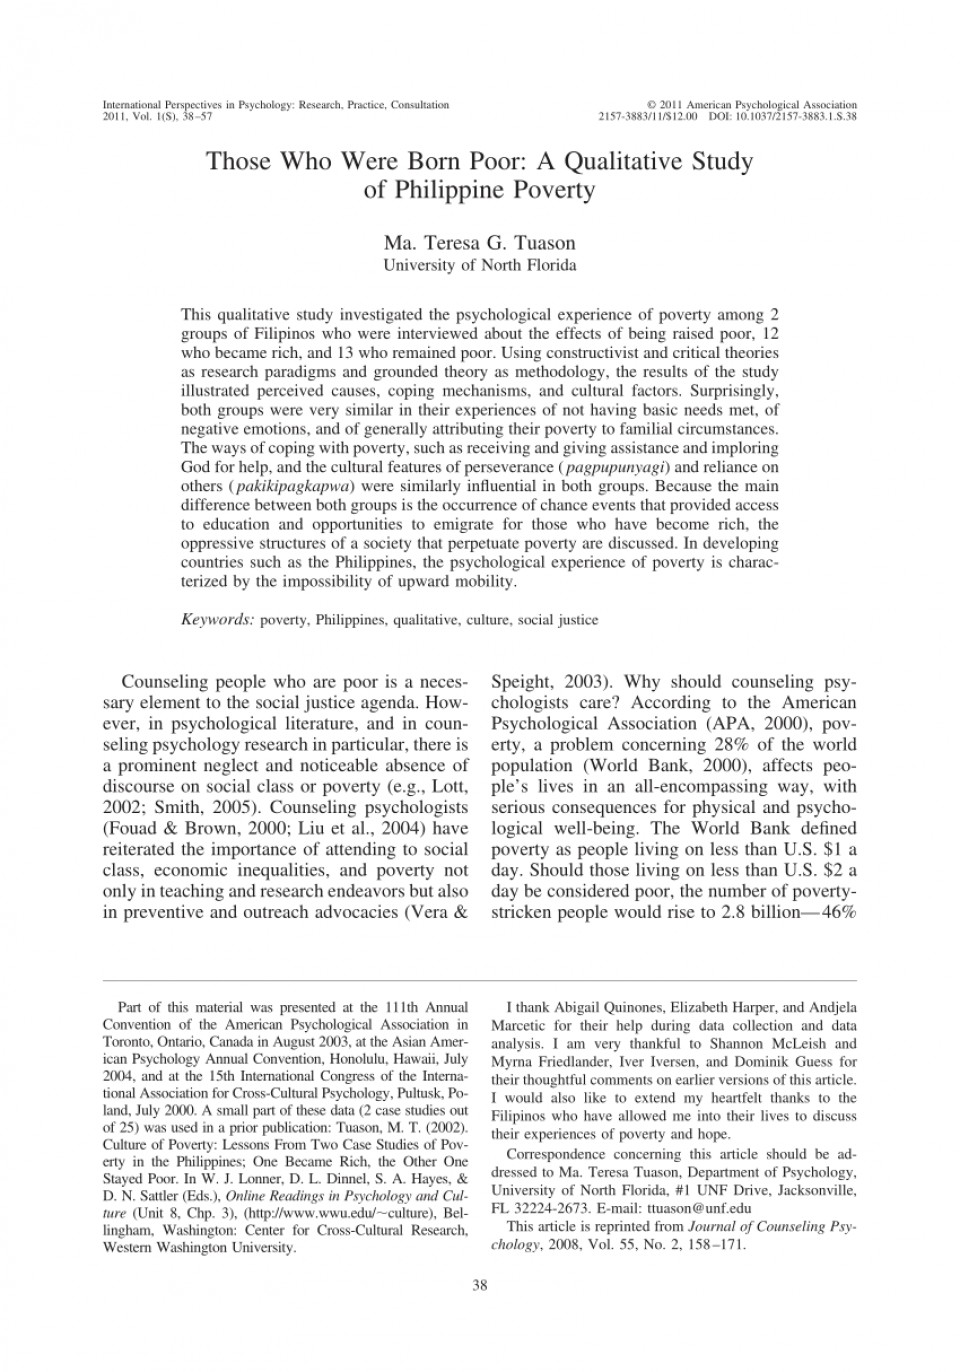 002 Poverty In The Philippines Research Paper Pdf Impressive 960